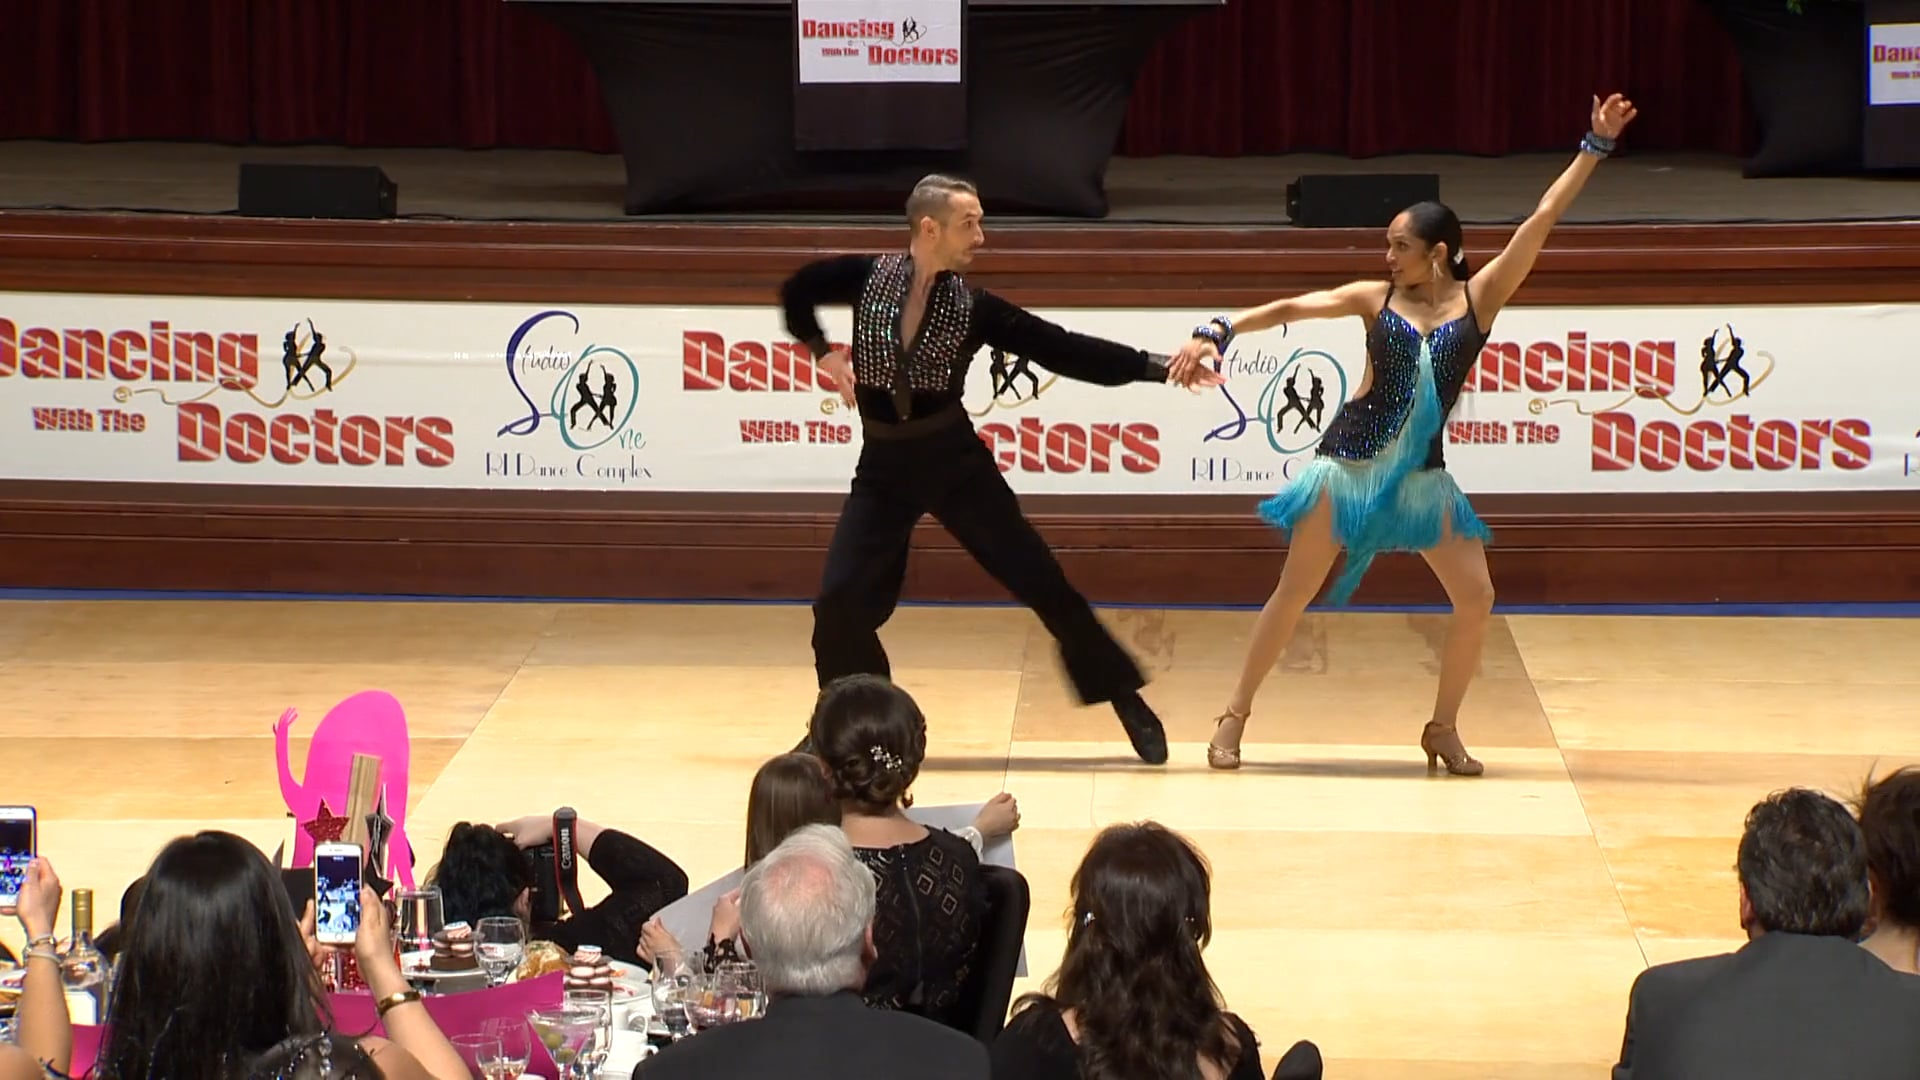 Dancing with the Doctors Event Highlights